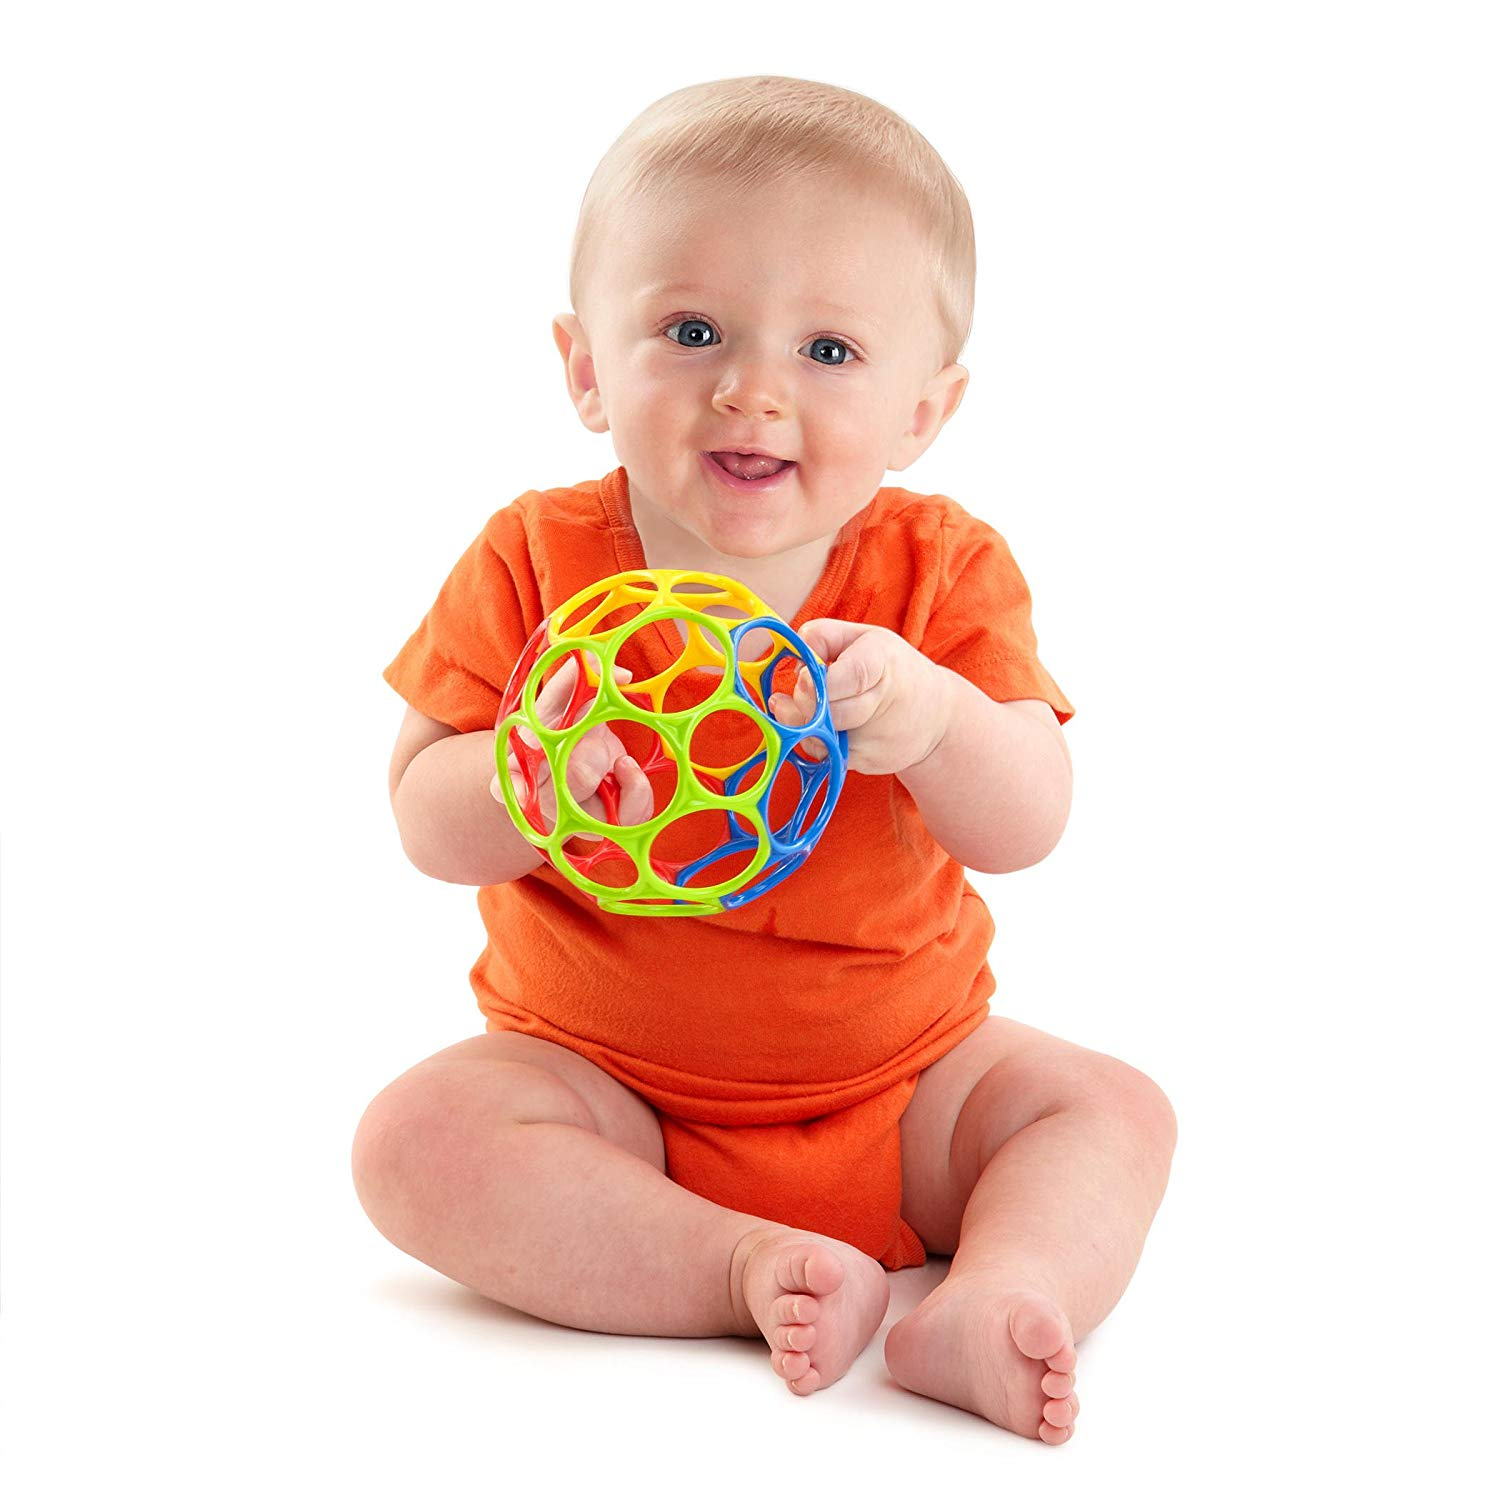 The OBall Toy is just the perfect size for the baby's hands.